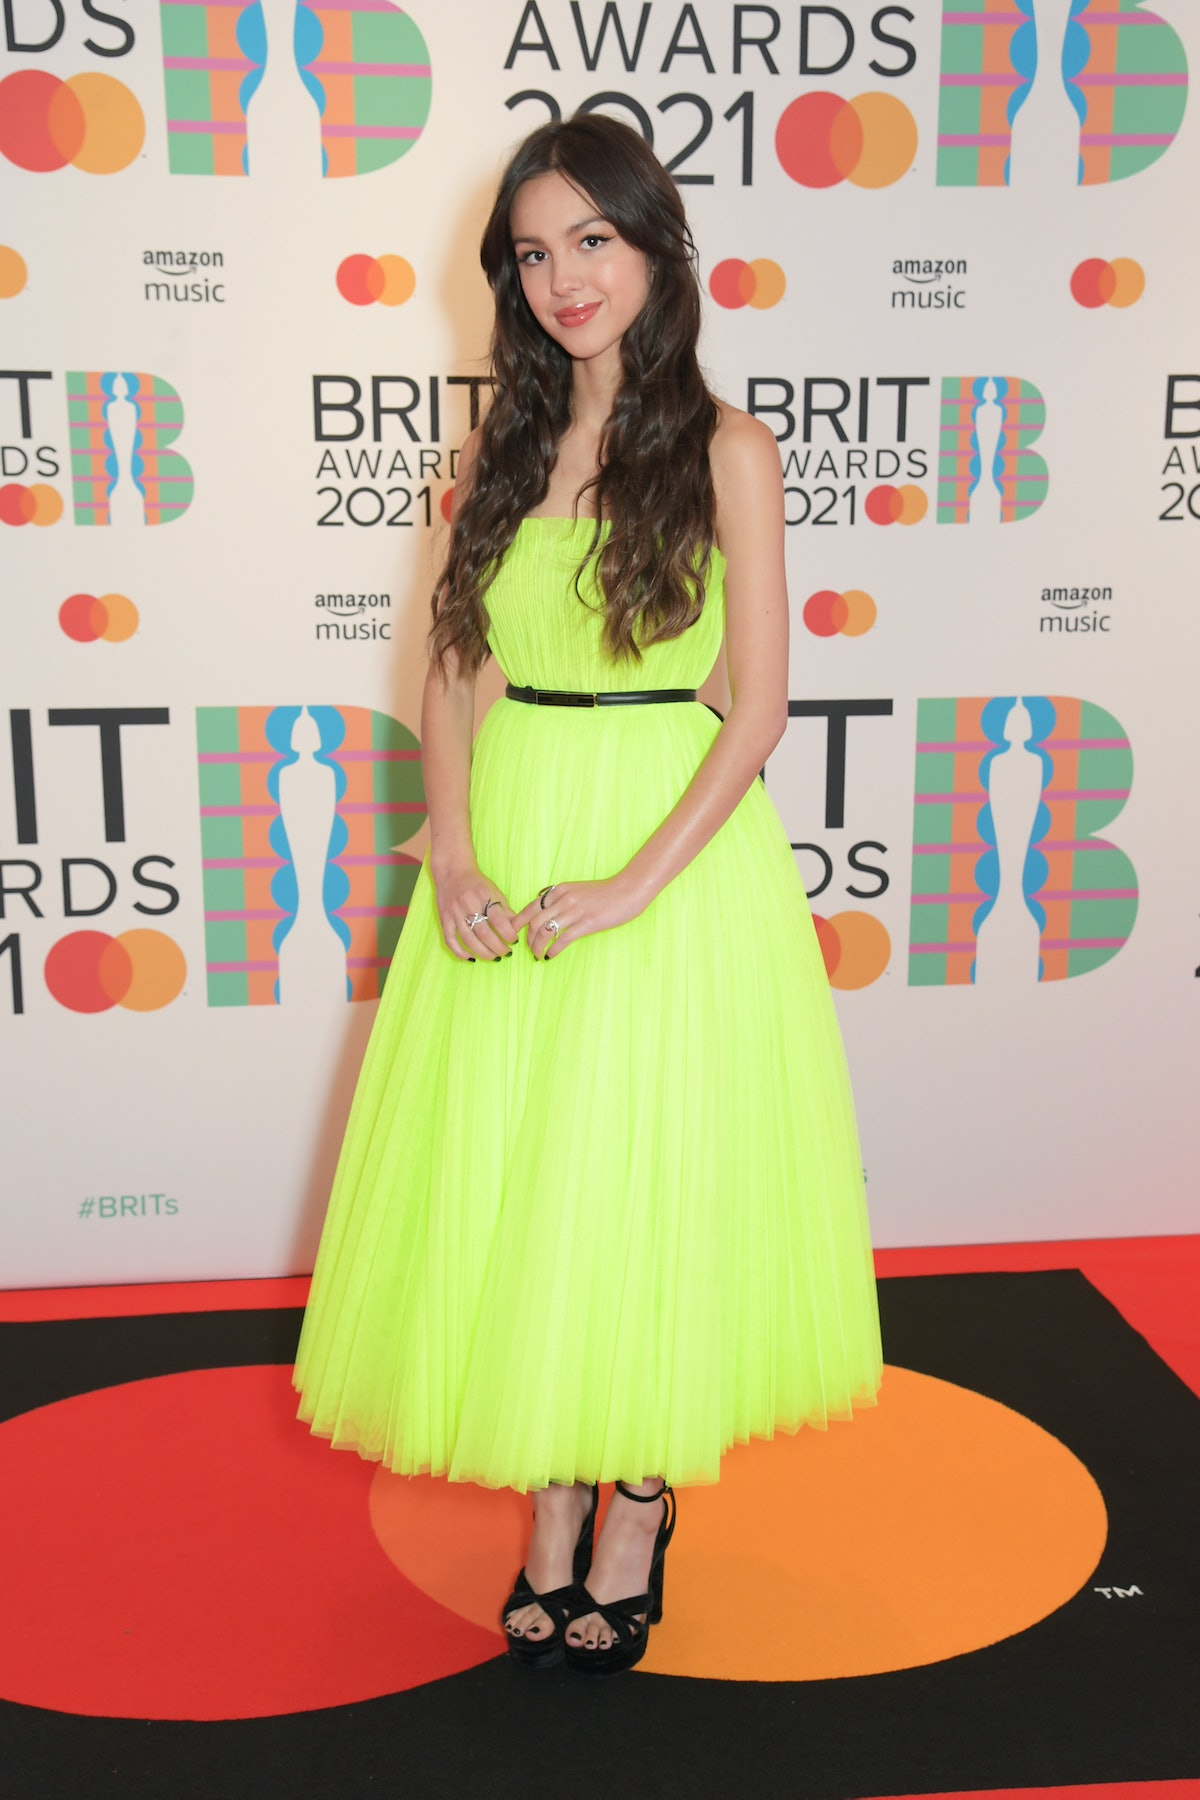 LONDON, ENGLAND - MAY 11:   Olivia Rodrigo arrives at The BRIT Awards 2021 at The O2 Arena on May 11, 2021 in London, England.  (Photo by David M. Benett/Dave Benett/Getty Images)